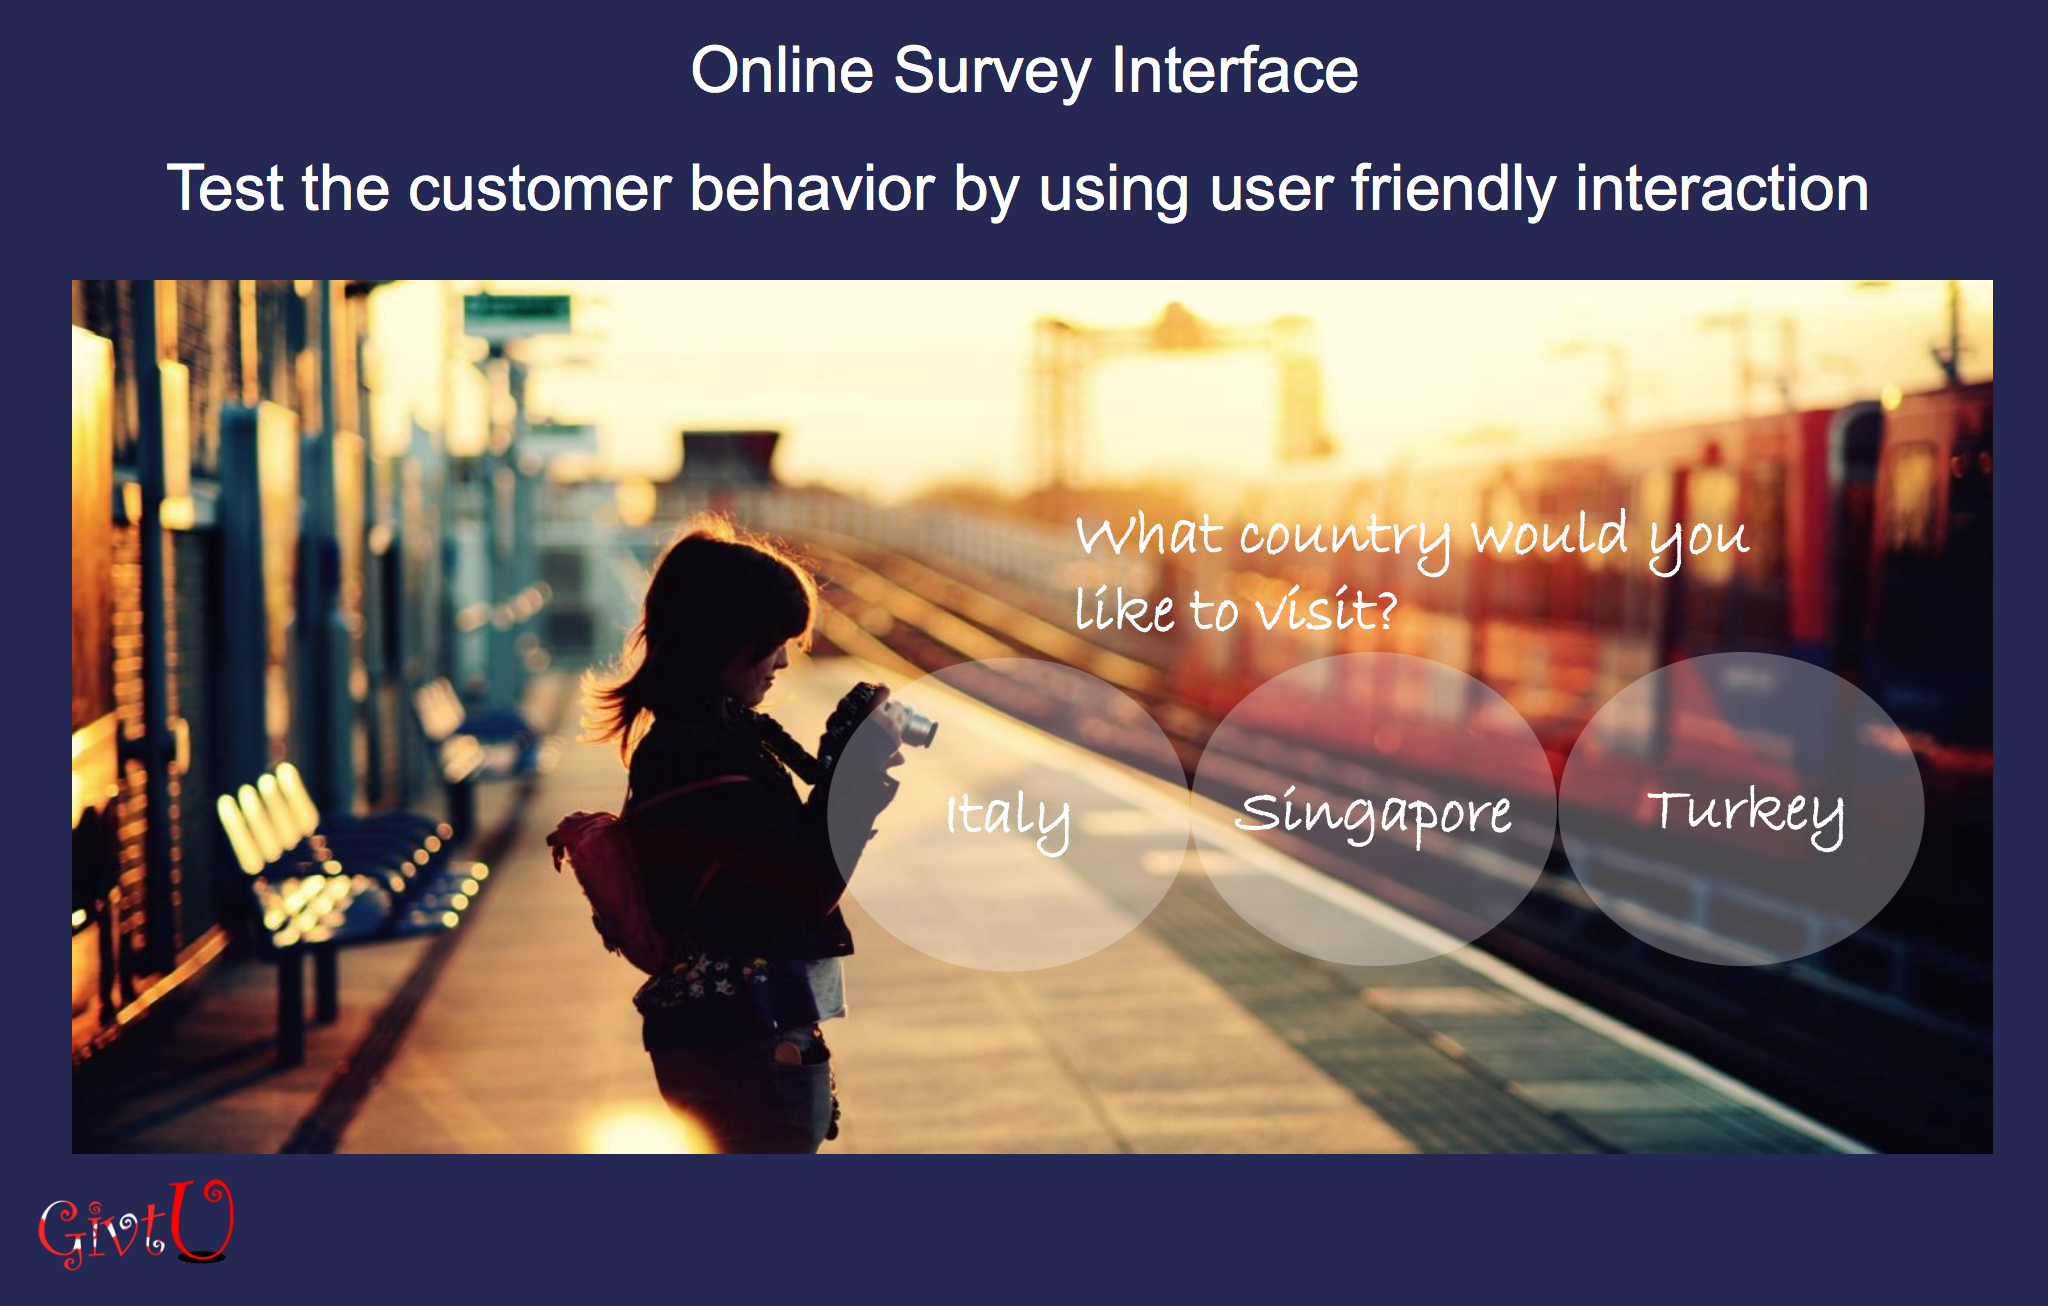 Online survey interface